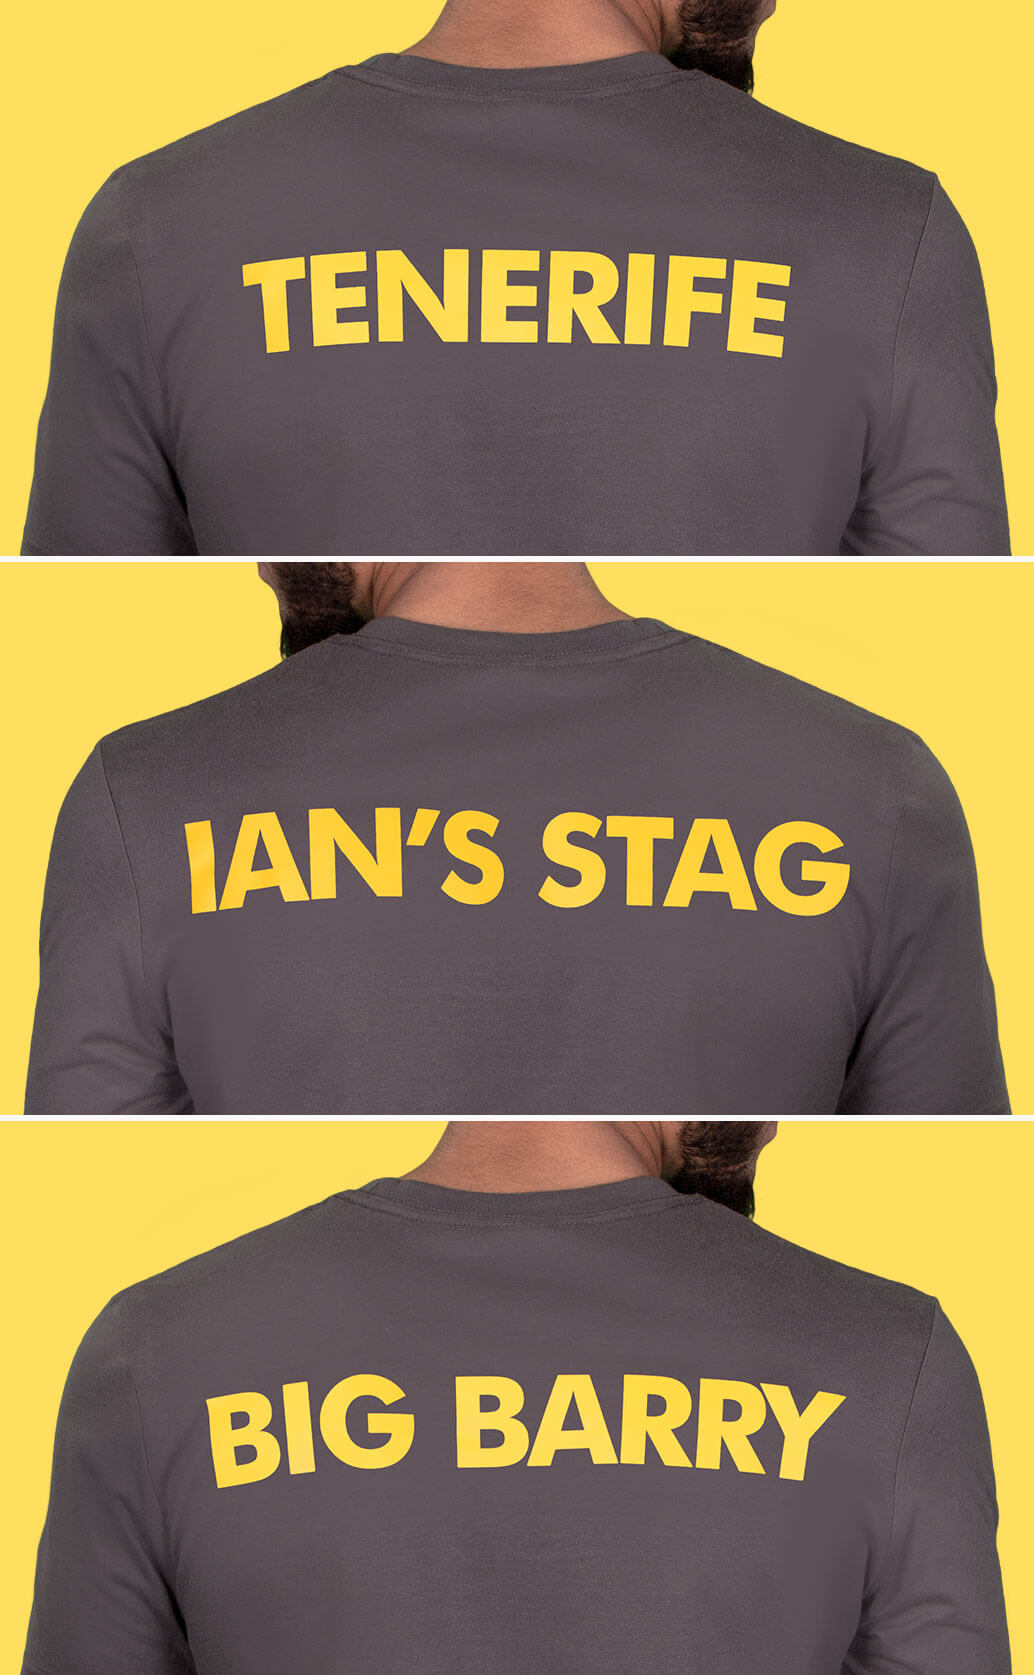 Three close-up shots of models wearing charcoal style fit t-shirts. Photographed from behind to show back name prints in yellow. First shot has 'Tenerife', second shot has 'Ian's Stag' and third has 'Big Barry'. Yellow background